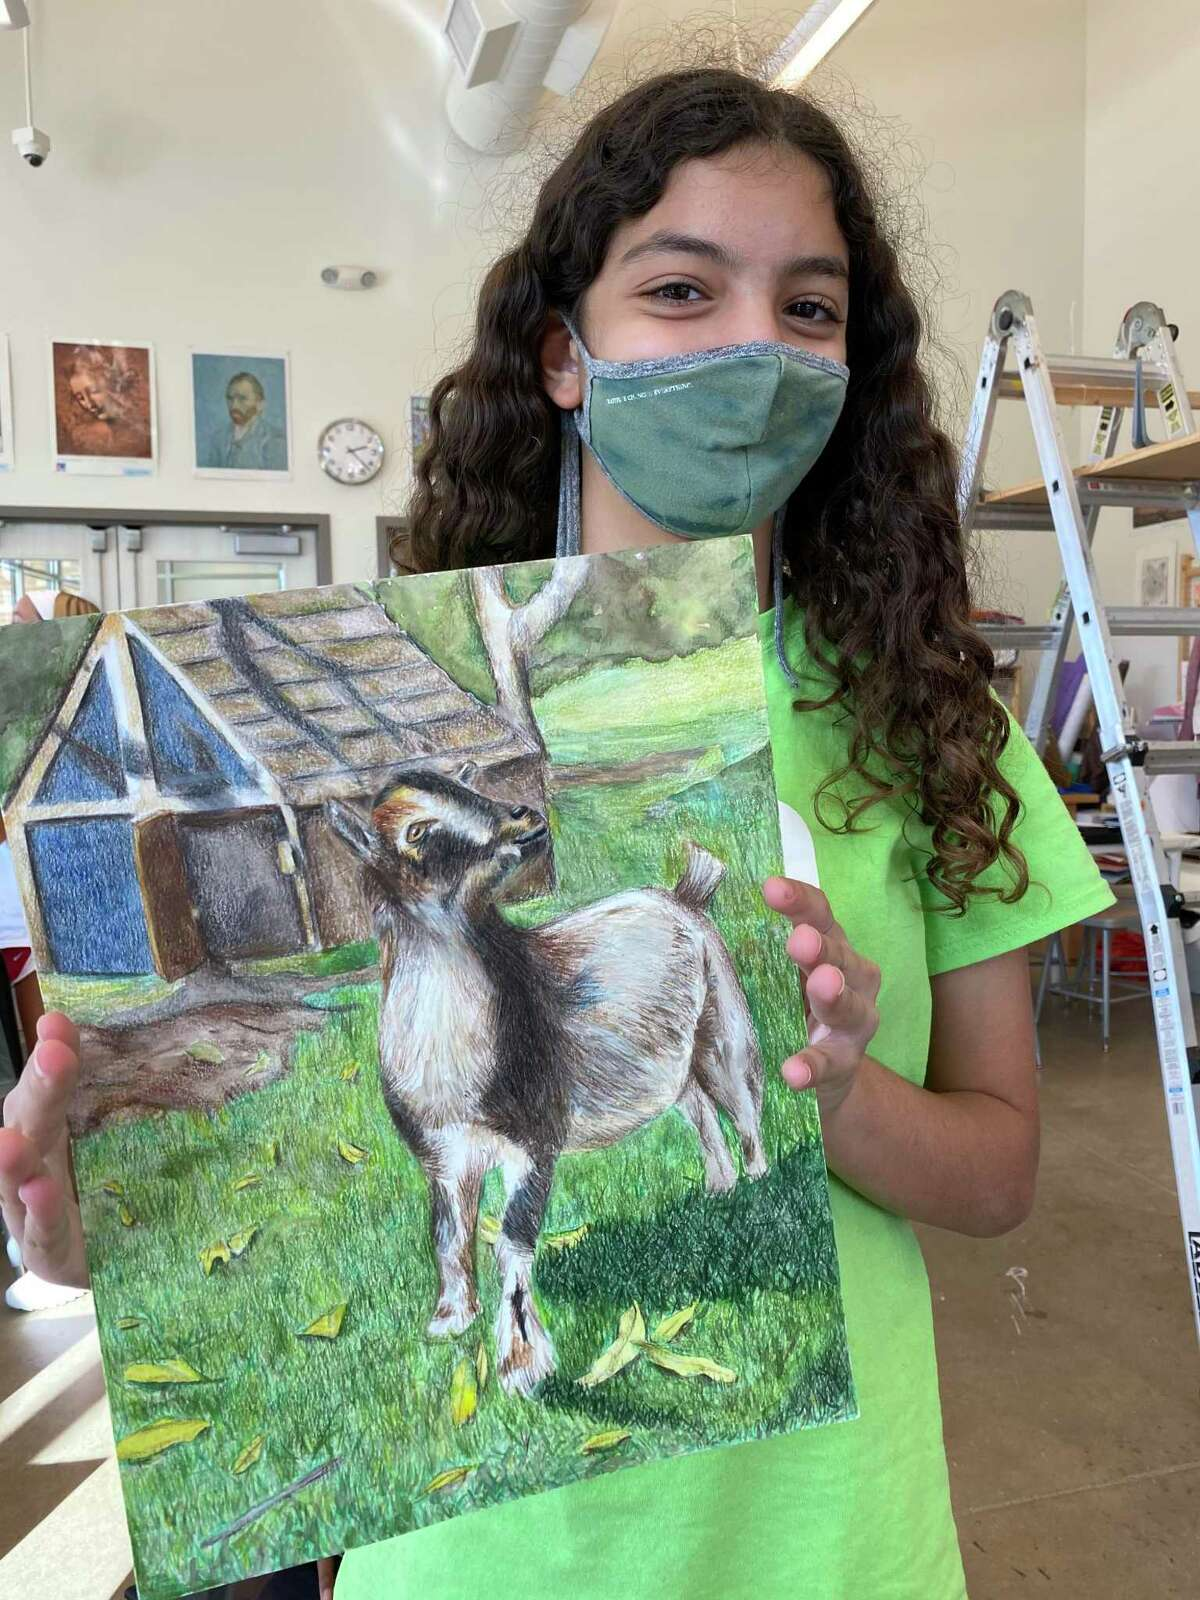 WIDE School sixth grader Luna Baba shows off her Best of Show piece from the rodeo art program.